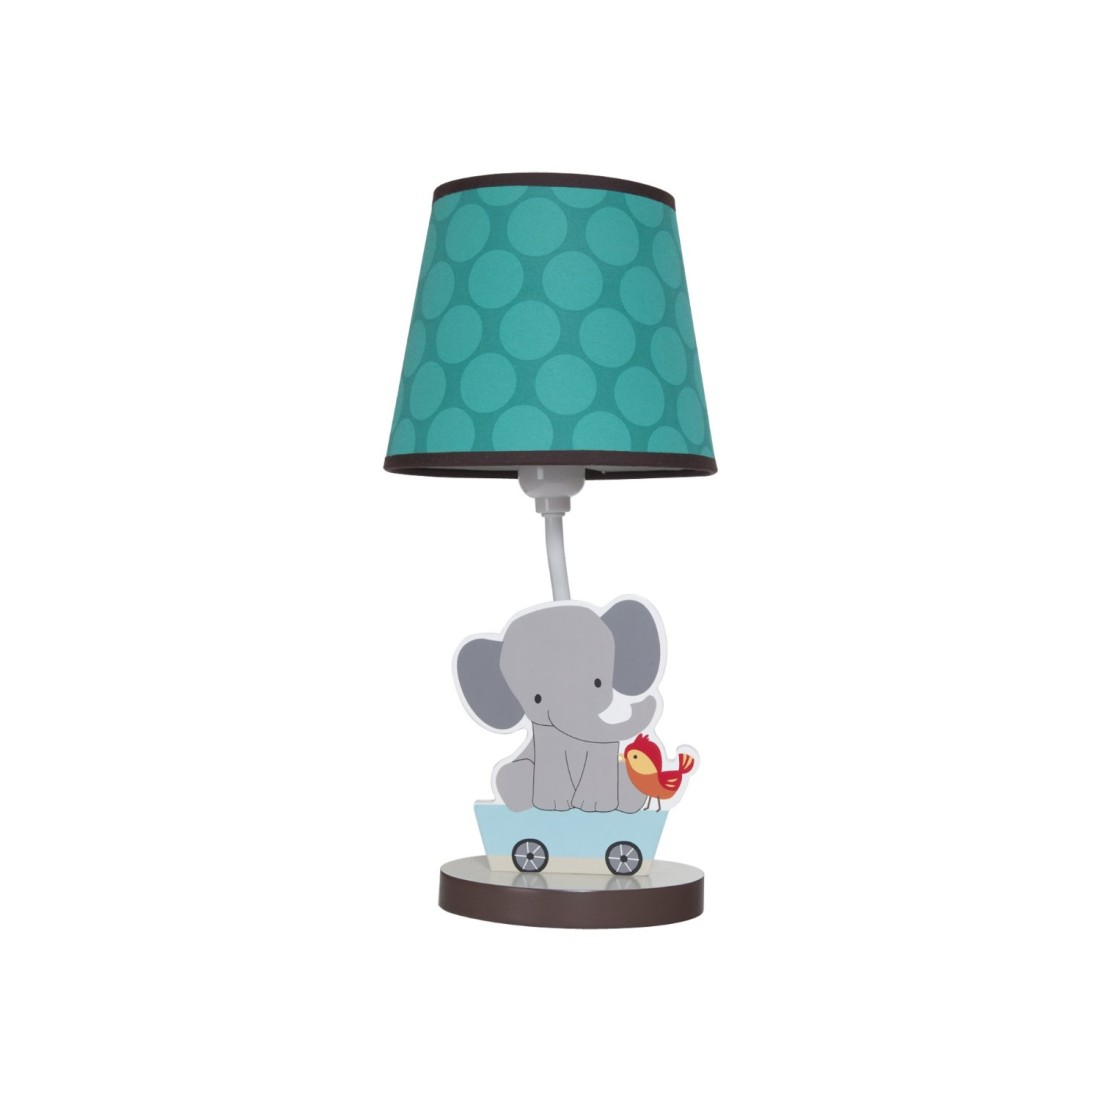 Bedtime Originals 35.6 cm Lamp Base(Fiber)